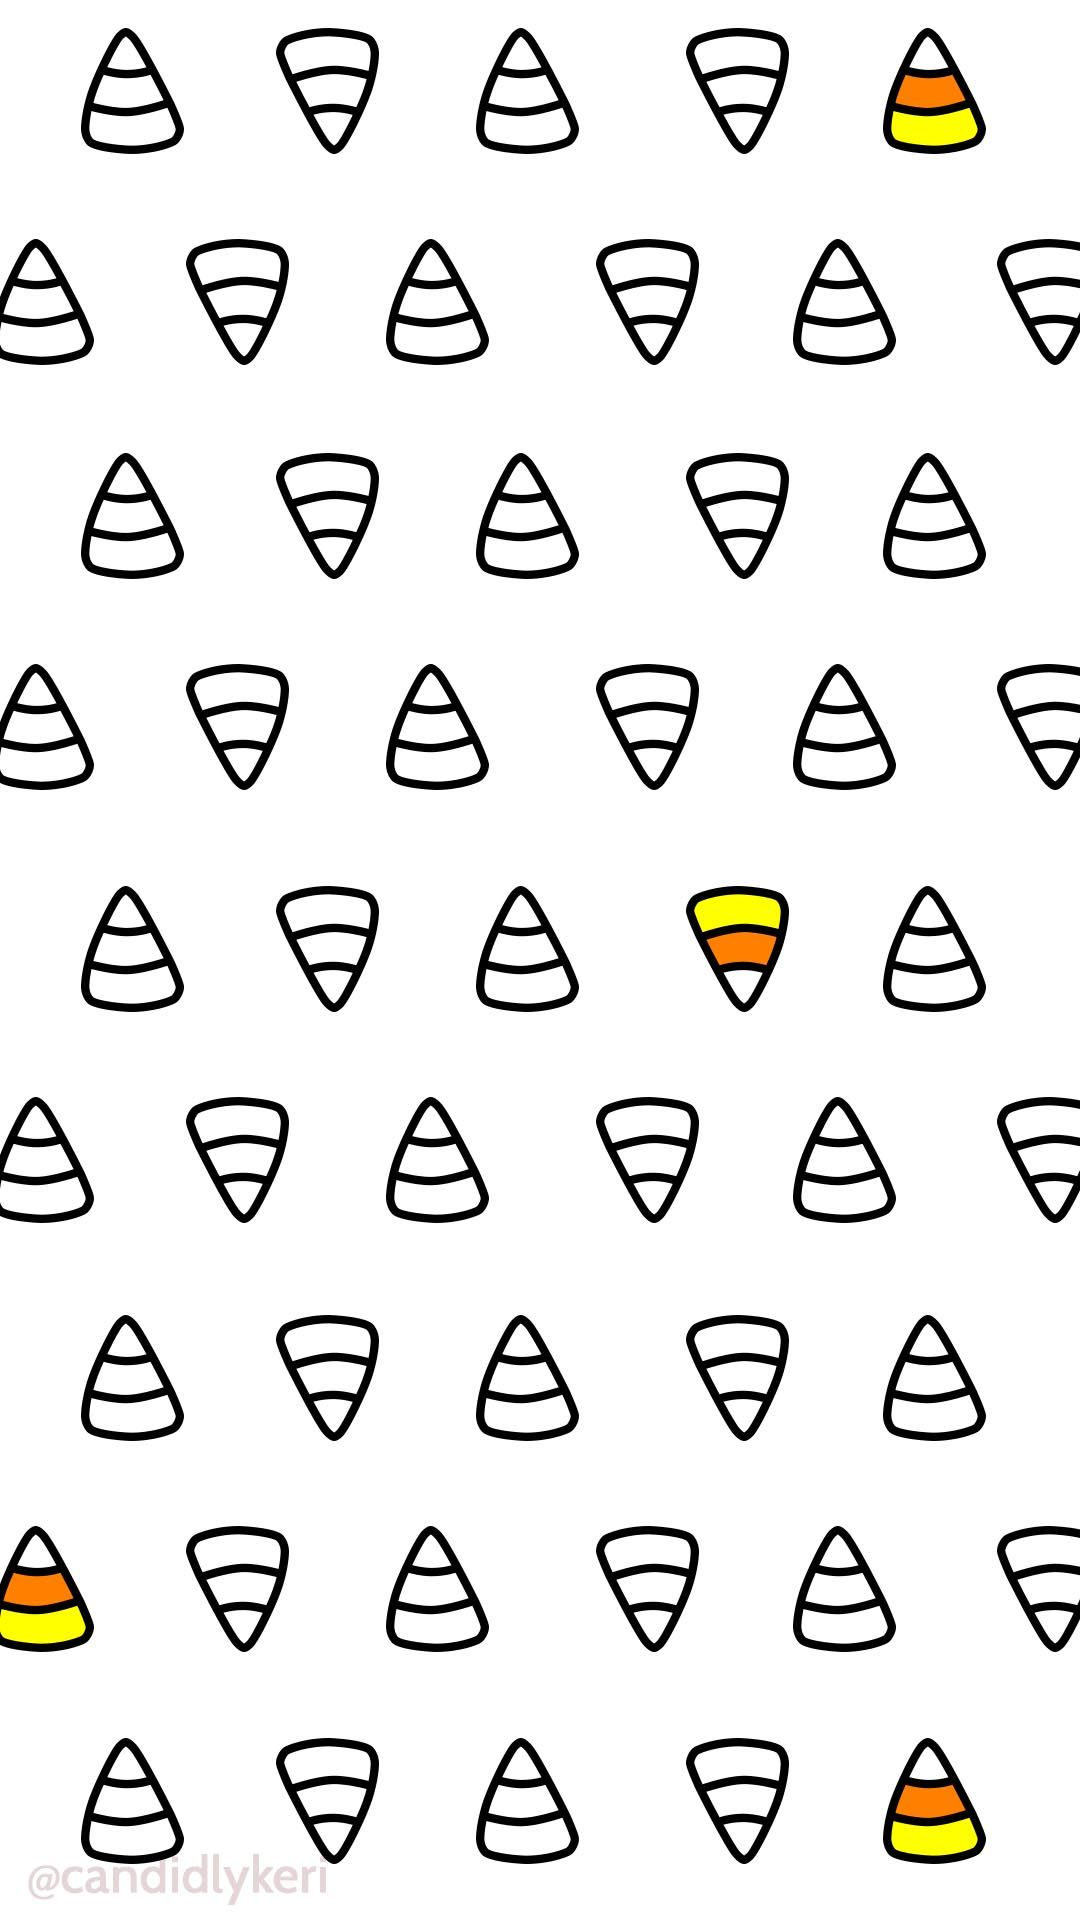 Cute Halloween Candy Corn October 2016 Wallpaper You Can Download For Free On The Halloween Wallpaper Iphone Halloween Desktop Wallpaper Wallpaper Iphone Cute